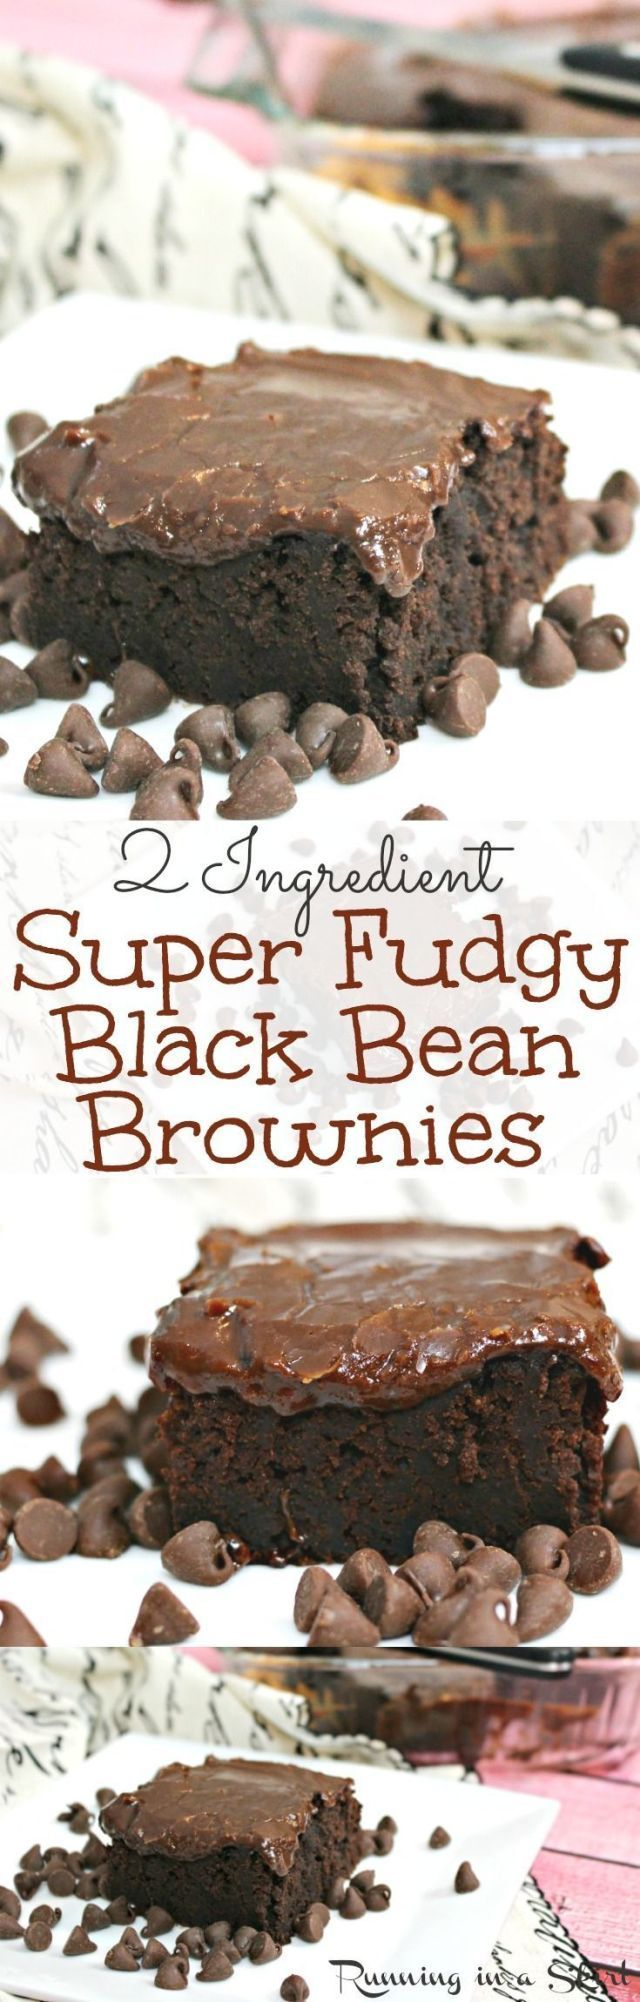 2 Recipe for ingredient Black Bean Brownies with homemade healthy fudge icing. Amaz   The post 2 Re